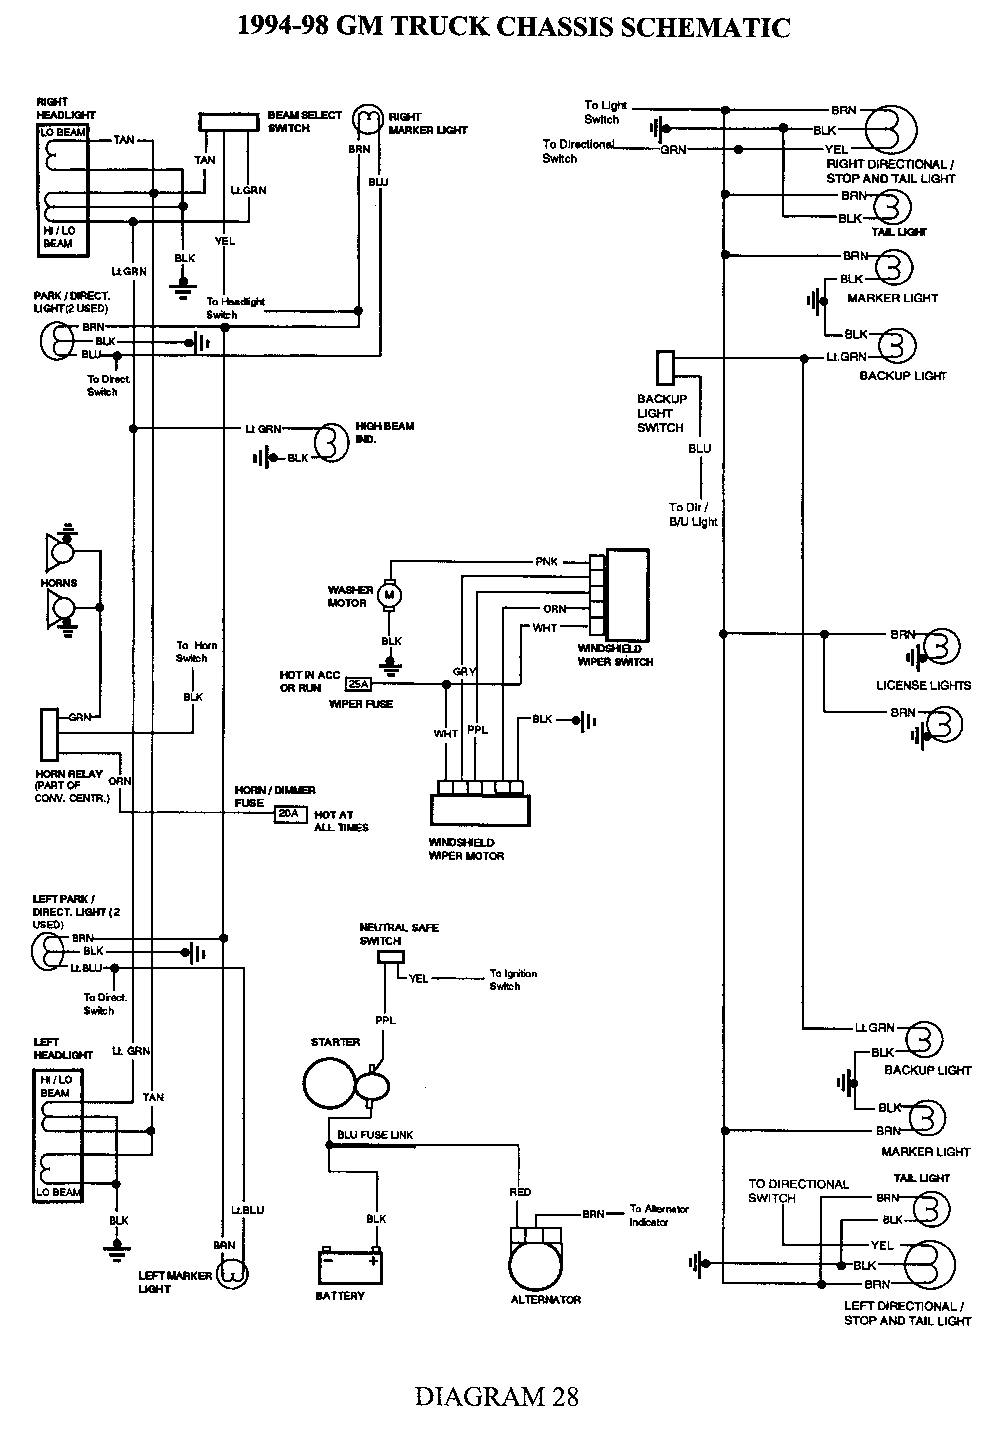 Chevy Wiring Diagram For Trailer | Wiring Diagram on chassis for trailer, accessories for trailer, parts for trailer, lights for trailer, circuit breaker for trailer, dimensions for trailer, wheels for trailer, frame for trailer, wire diagram for trailer, water pump for trailer, plumbing diagram for trailer, brakes for trailer, seats for trailer, power for trailer, wiring harness for trailer, charging system for trailer, heater for trailer, tires for trailer, wiring 7 pin trailer wiring diagram, suspension for trailer,